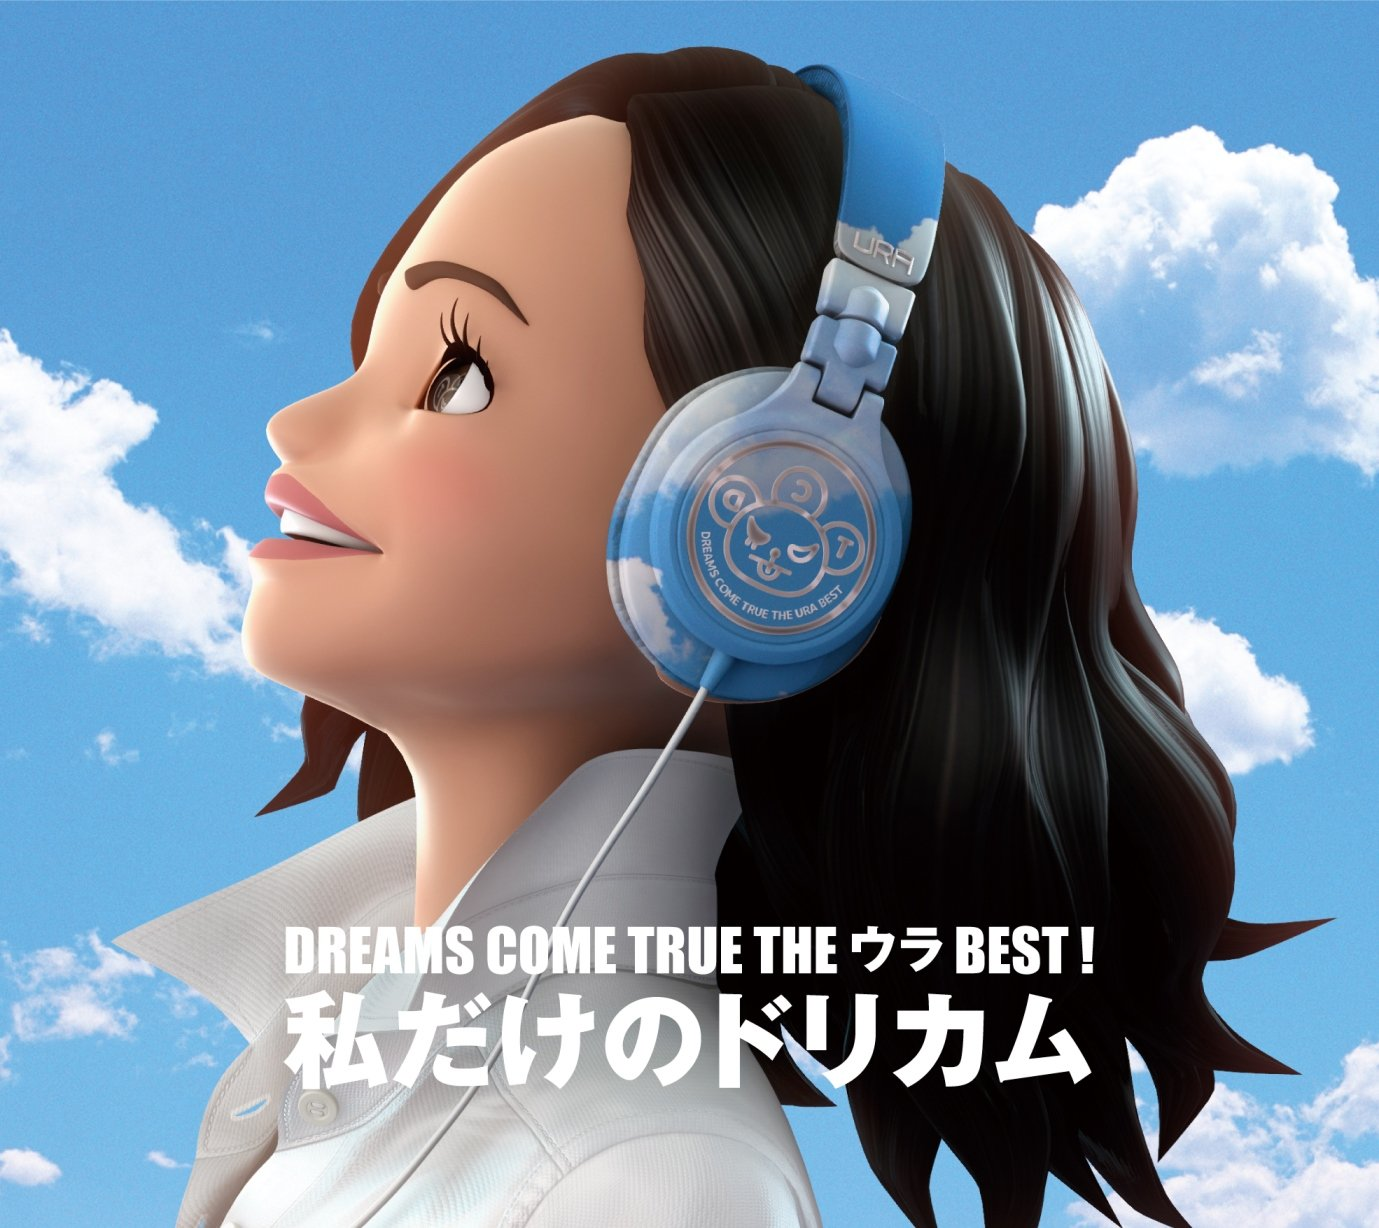 NekoPOP-Dreams-Come-True- URA-Best-jacket1